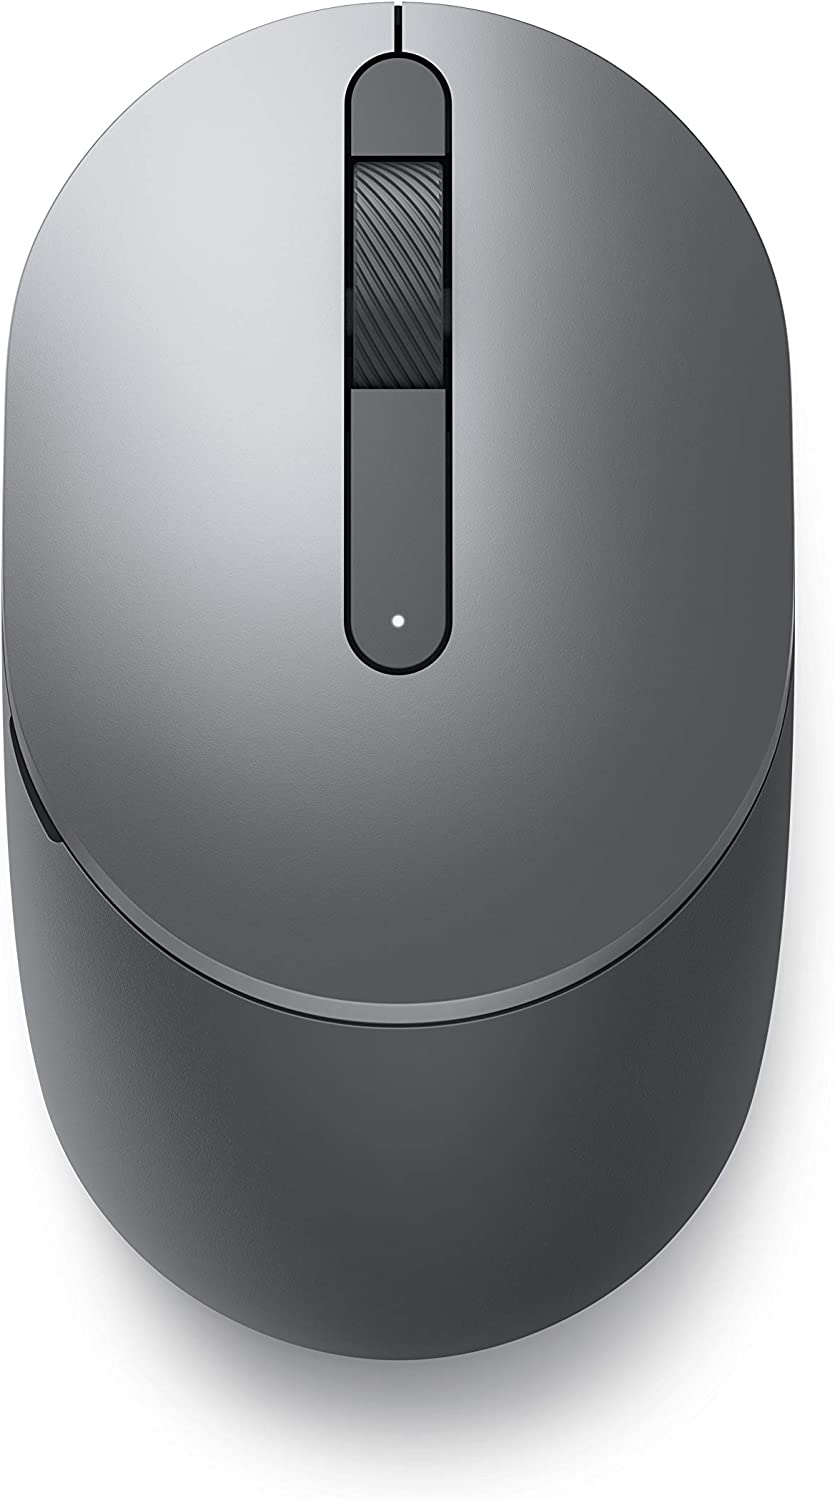 Mobile Wireless Mouse - MS3320W - Titan Gray